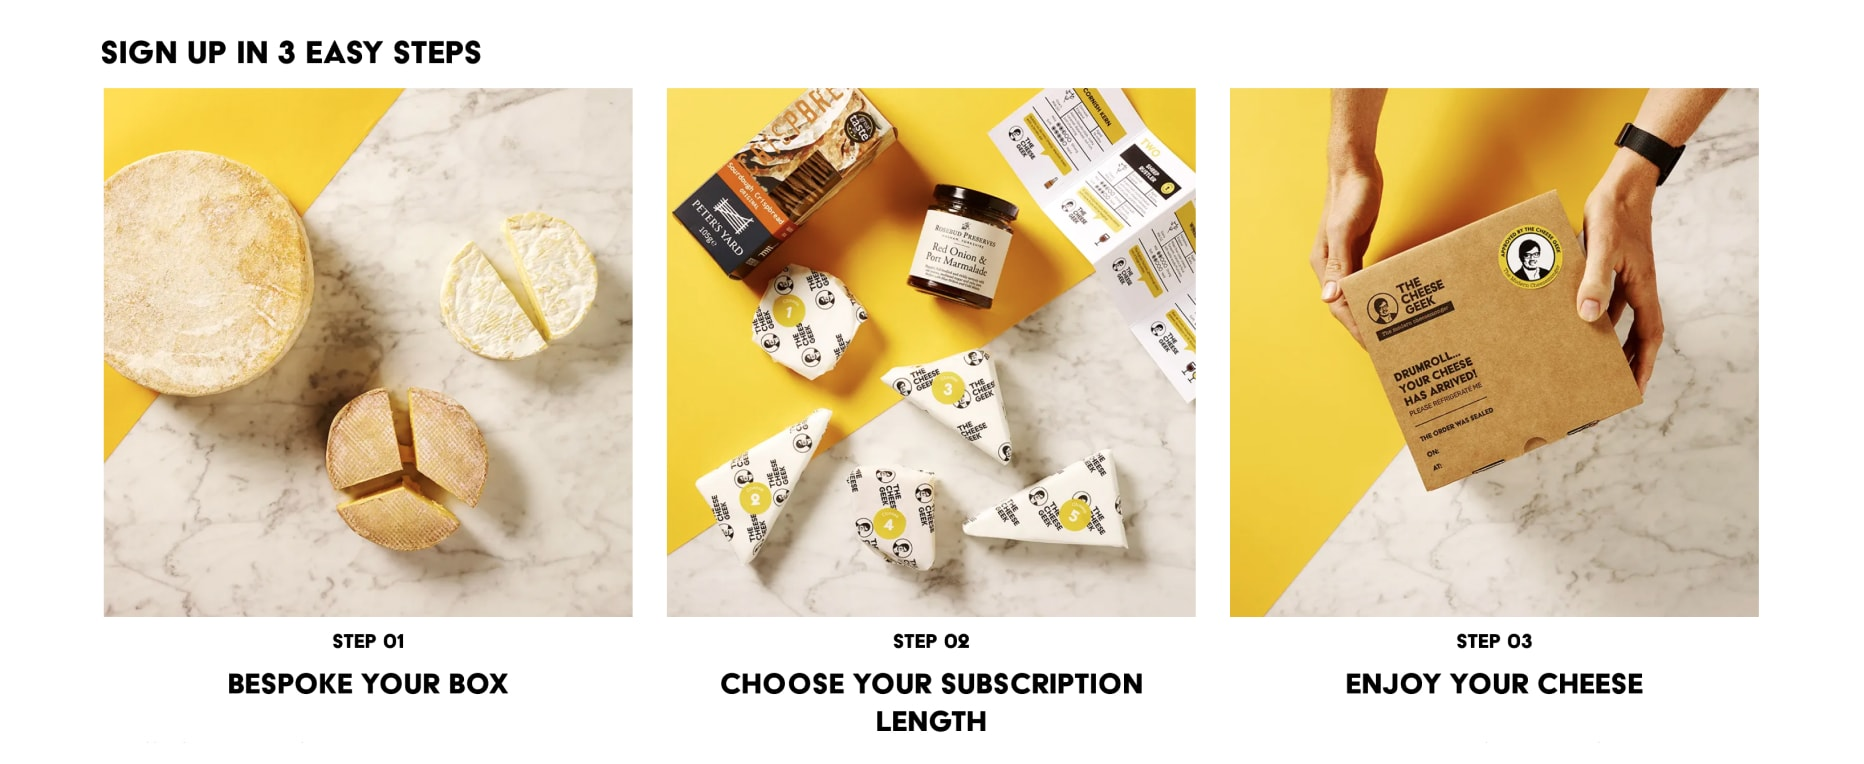 An example sign up flow from The Cheese Geek's storefront